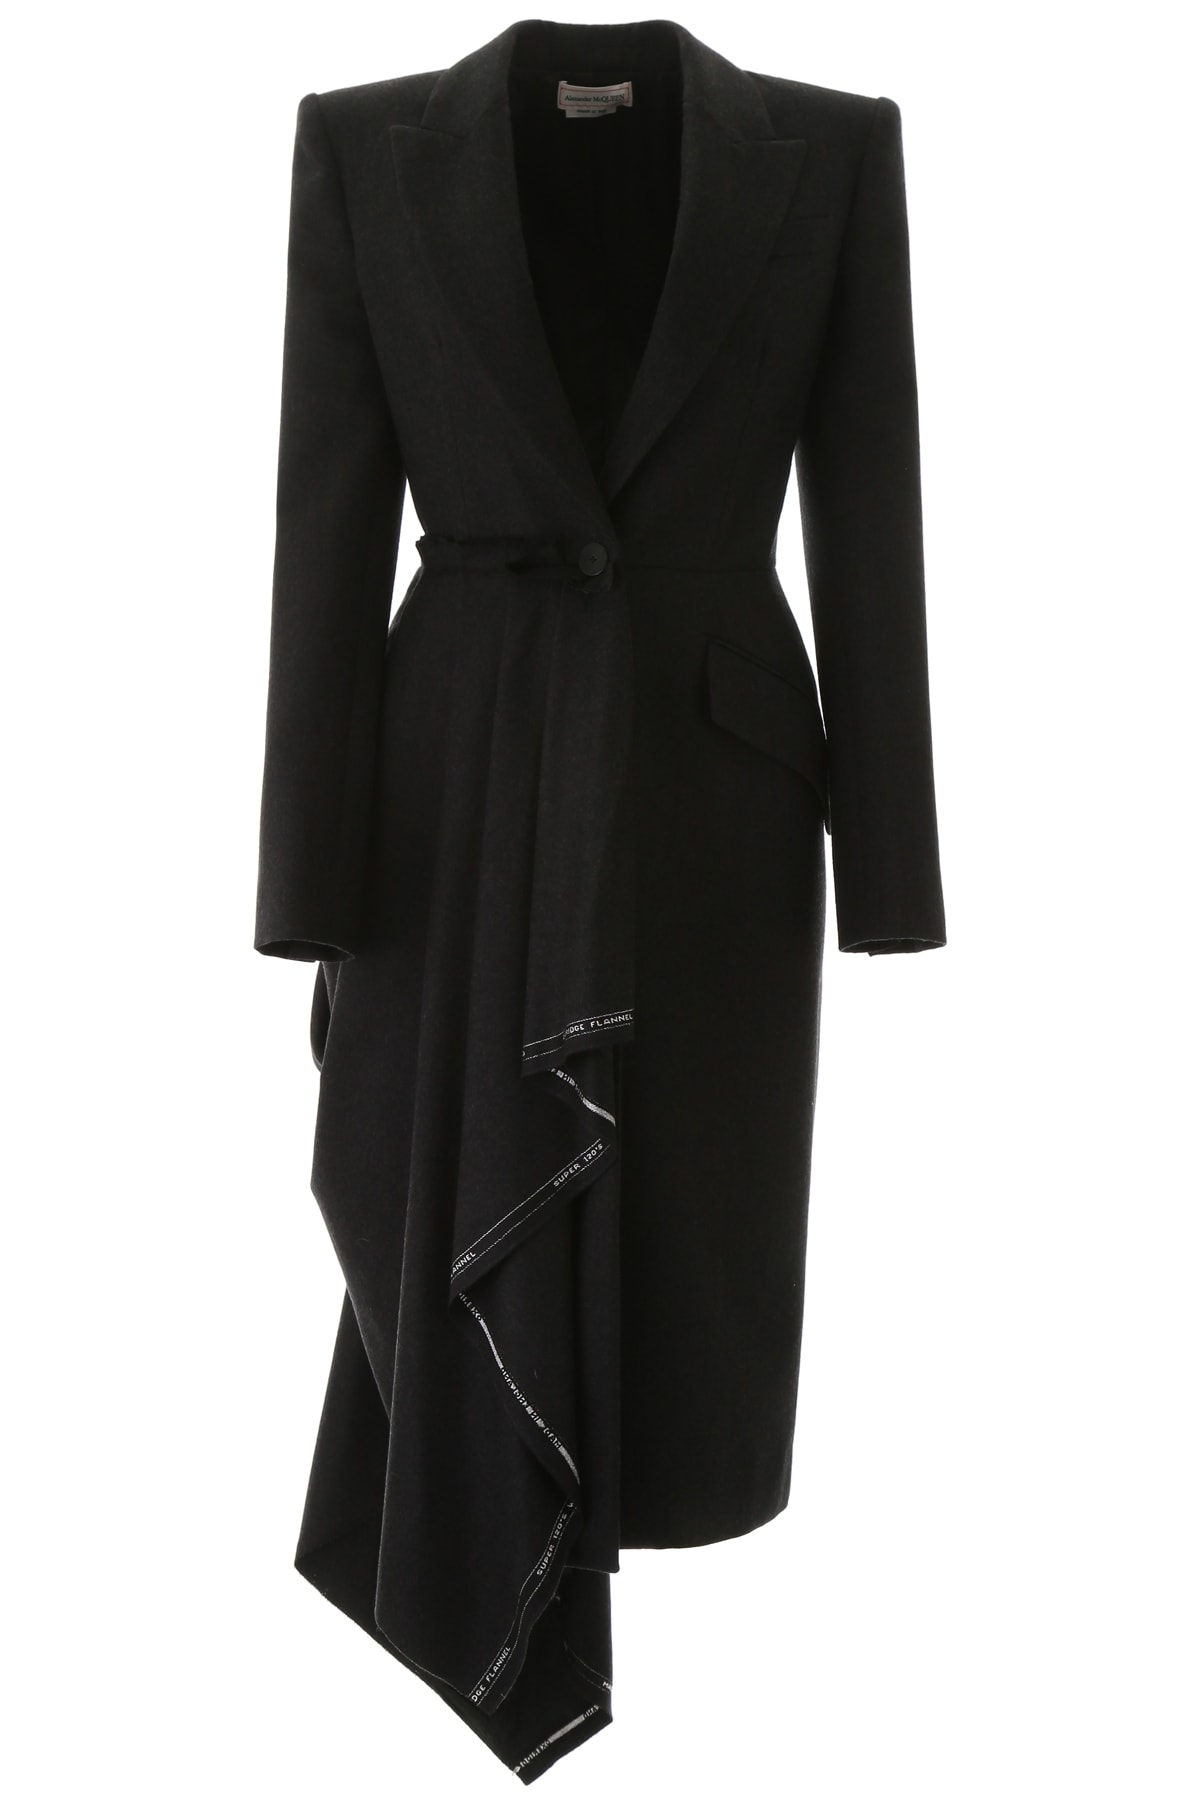 Alexander McQueen Draped Coat